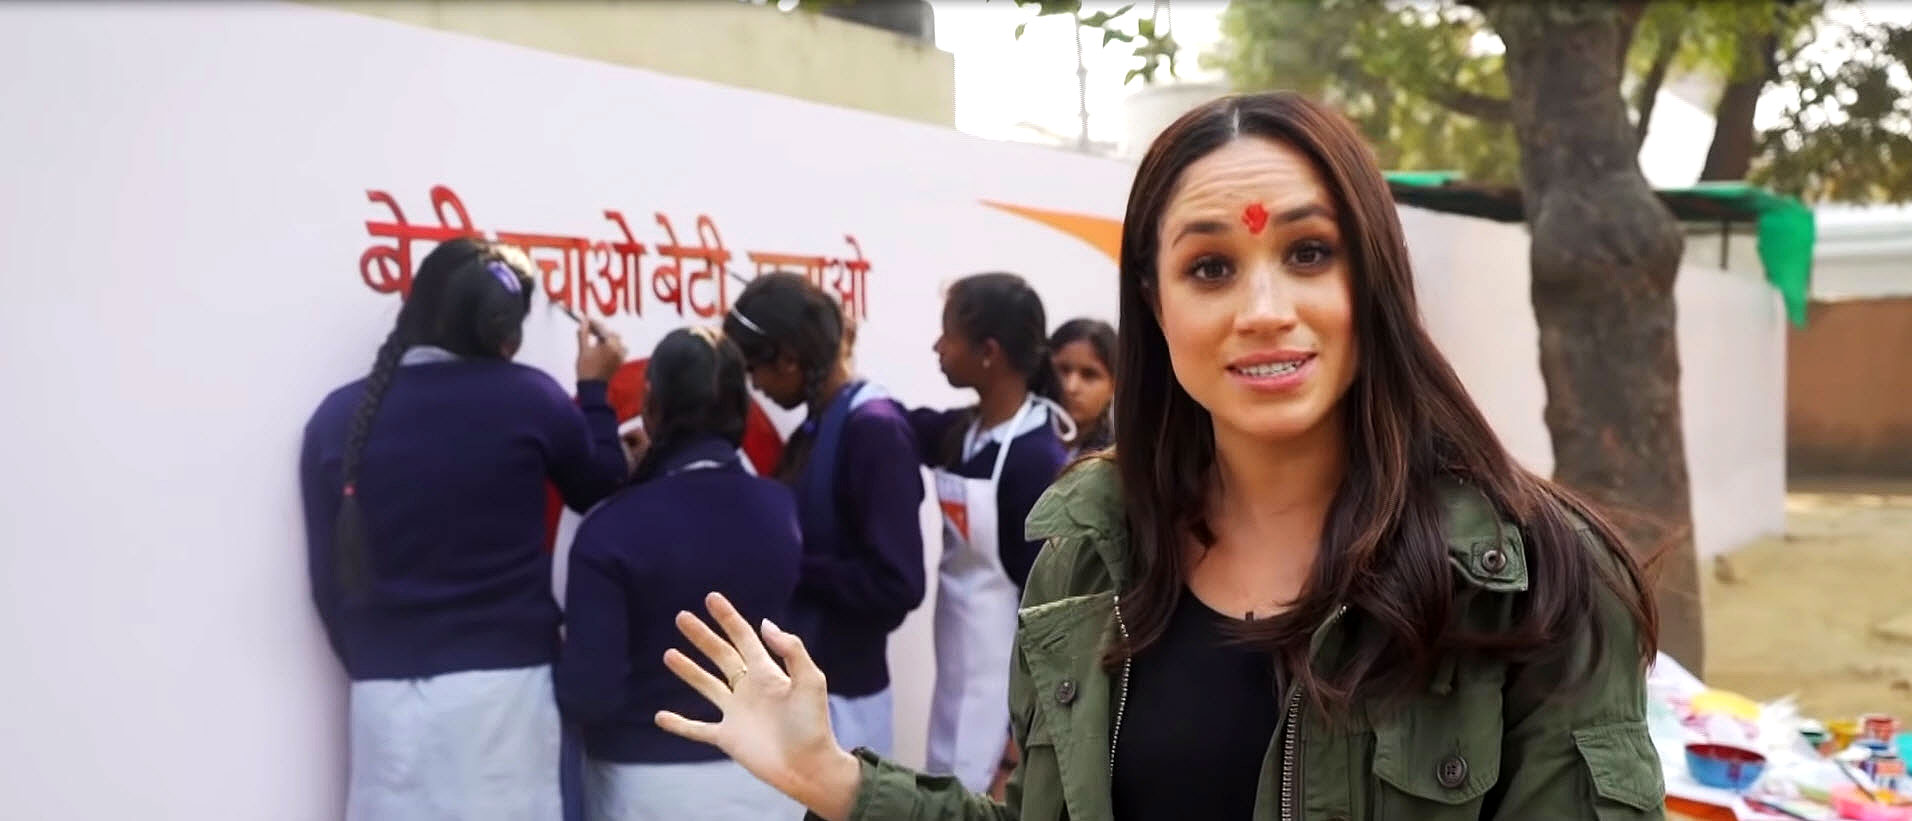 Duchess Meghan Touring in India Before Getting Engaged to Prince Harry - Duchess of Sussex visits India with World Vision.